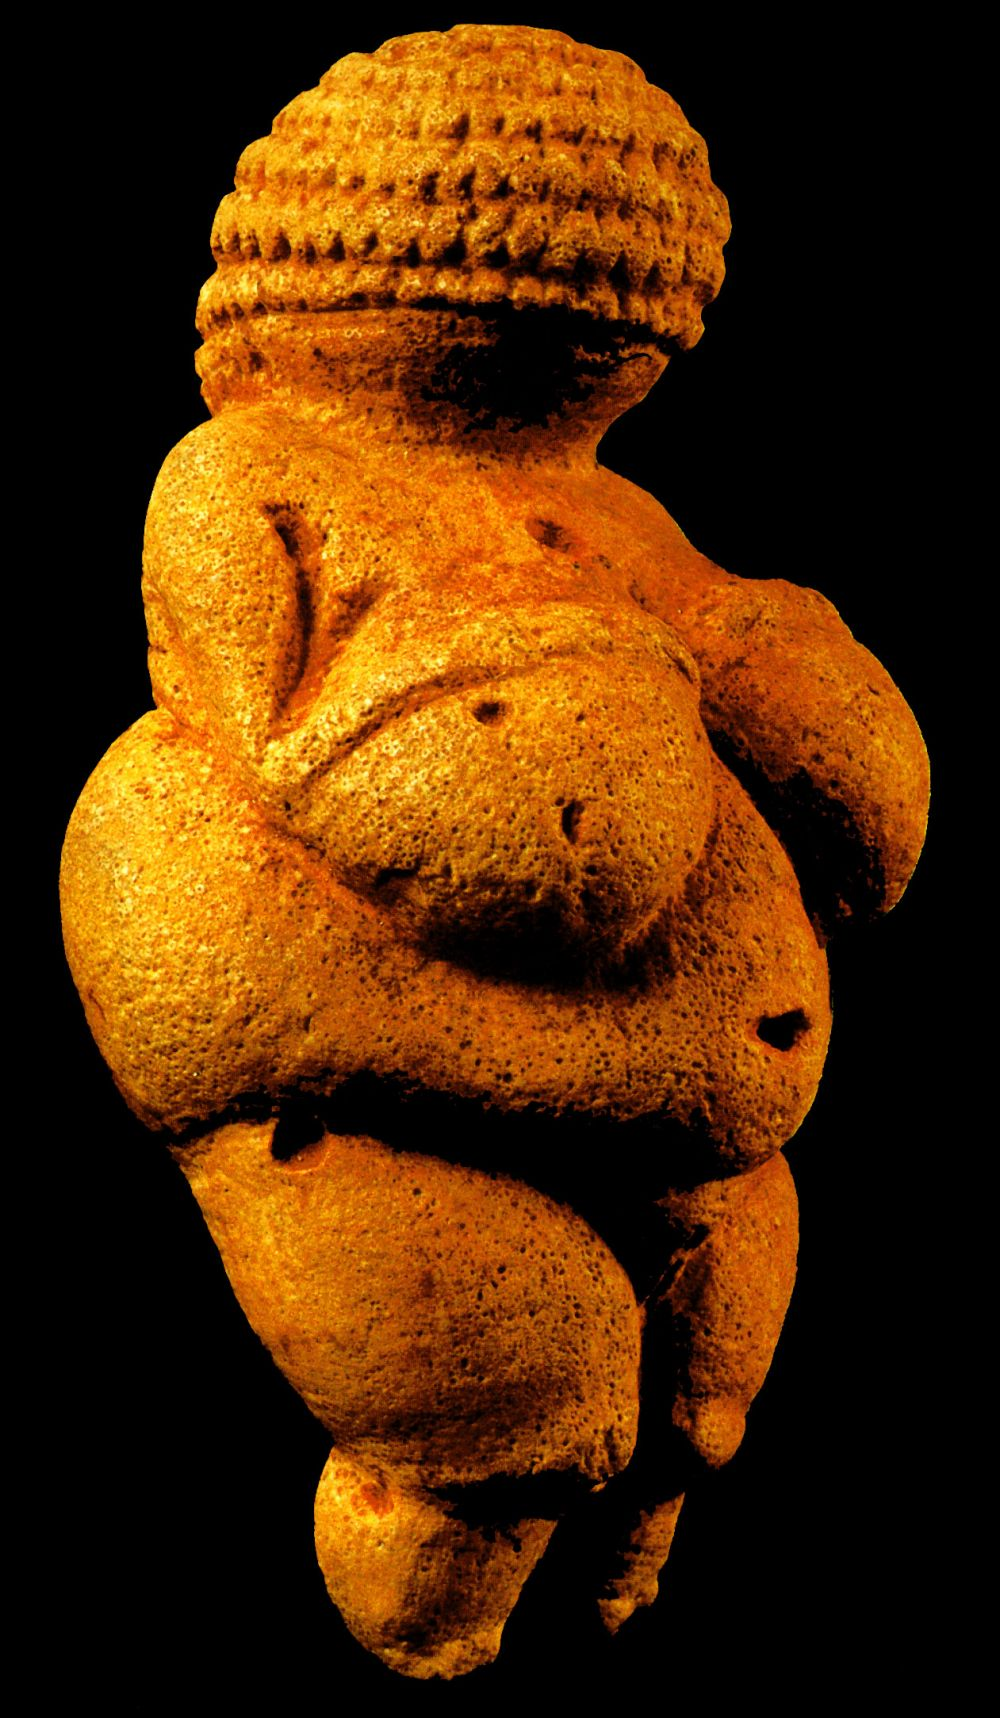 Mujeres. Mitologías Venus of Willendorf, Palaeolithic, Gravetian, Austria 25000-20000 BCE.